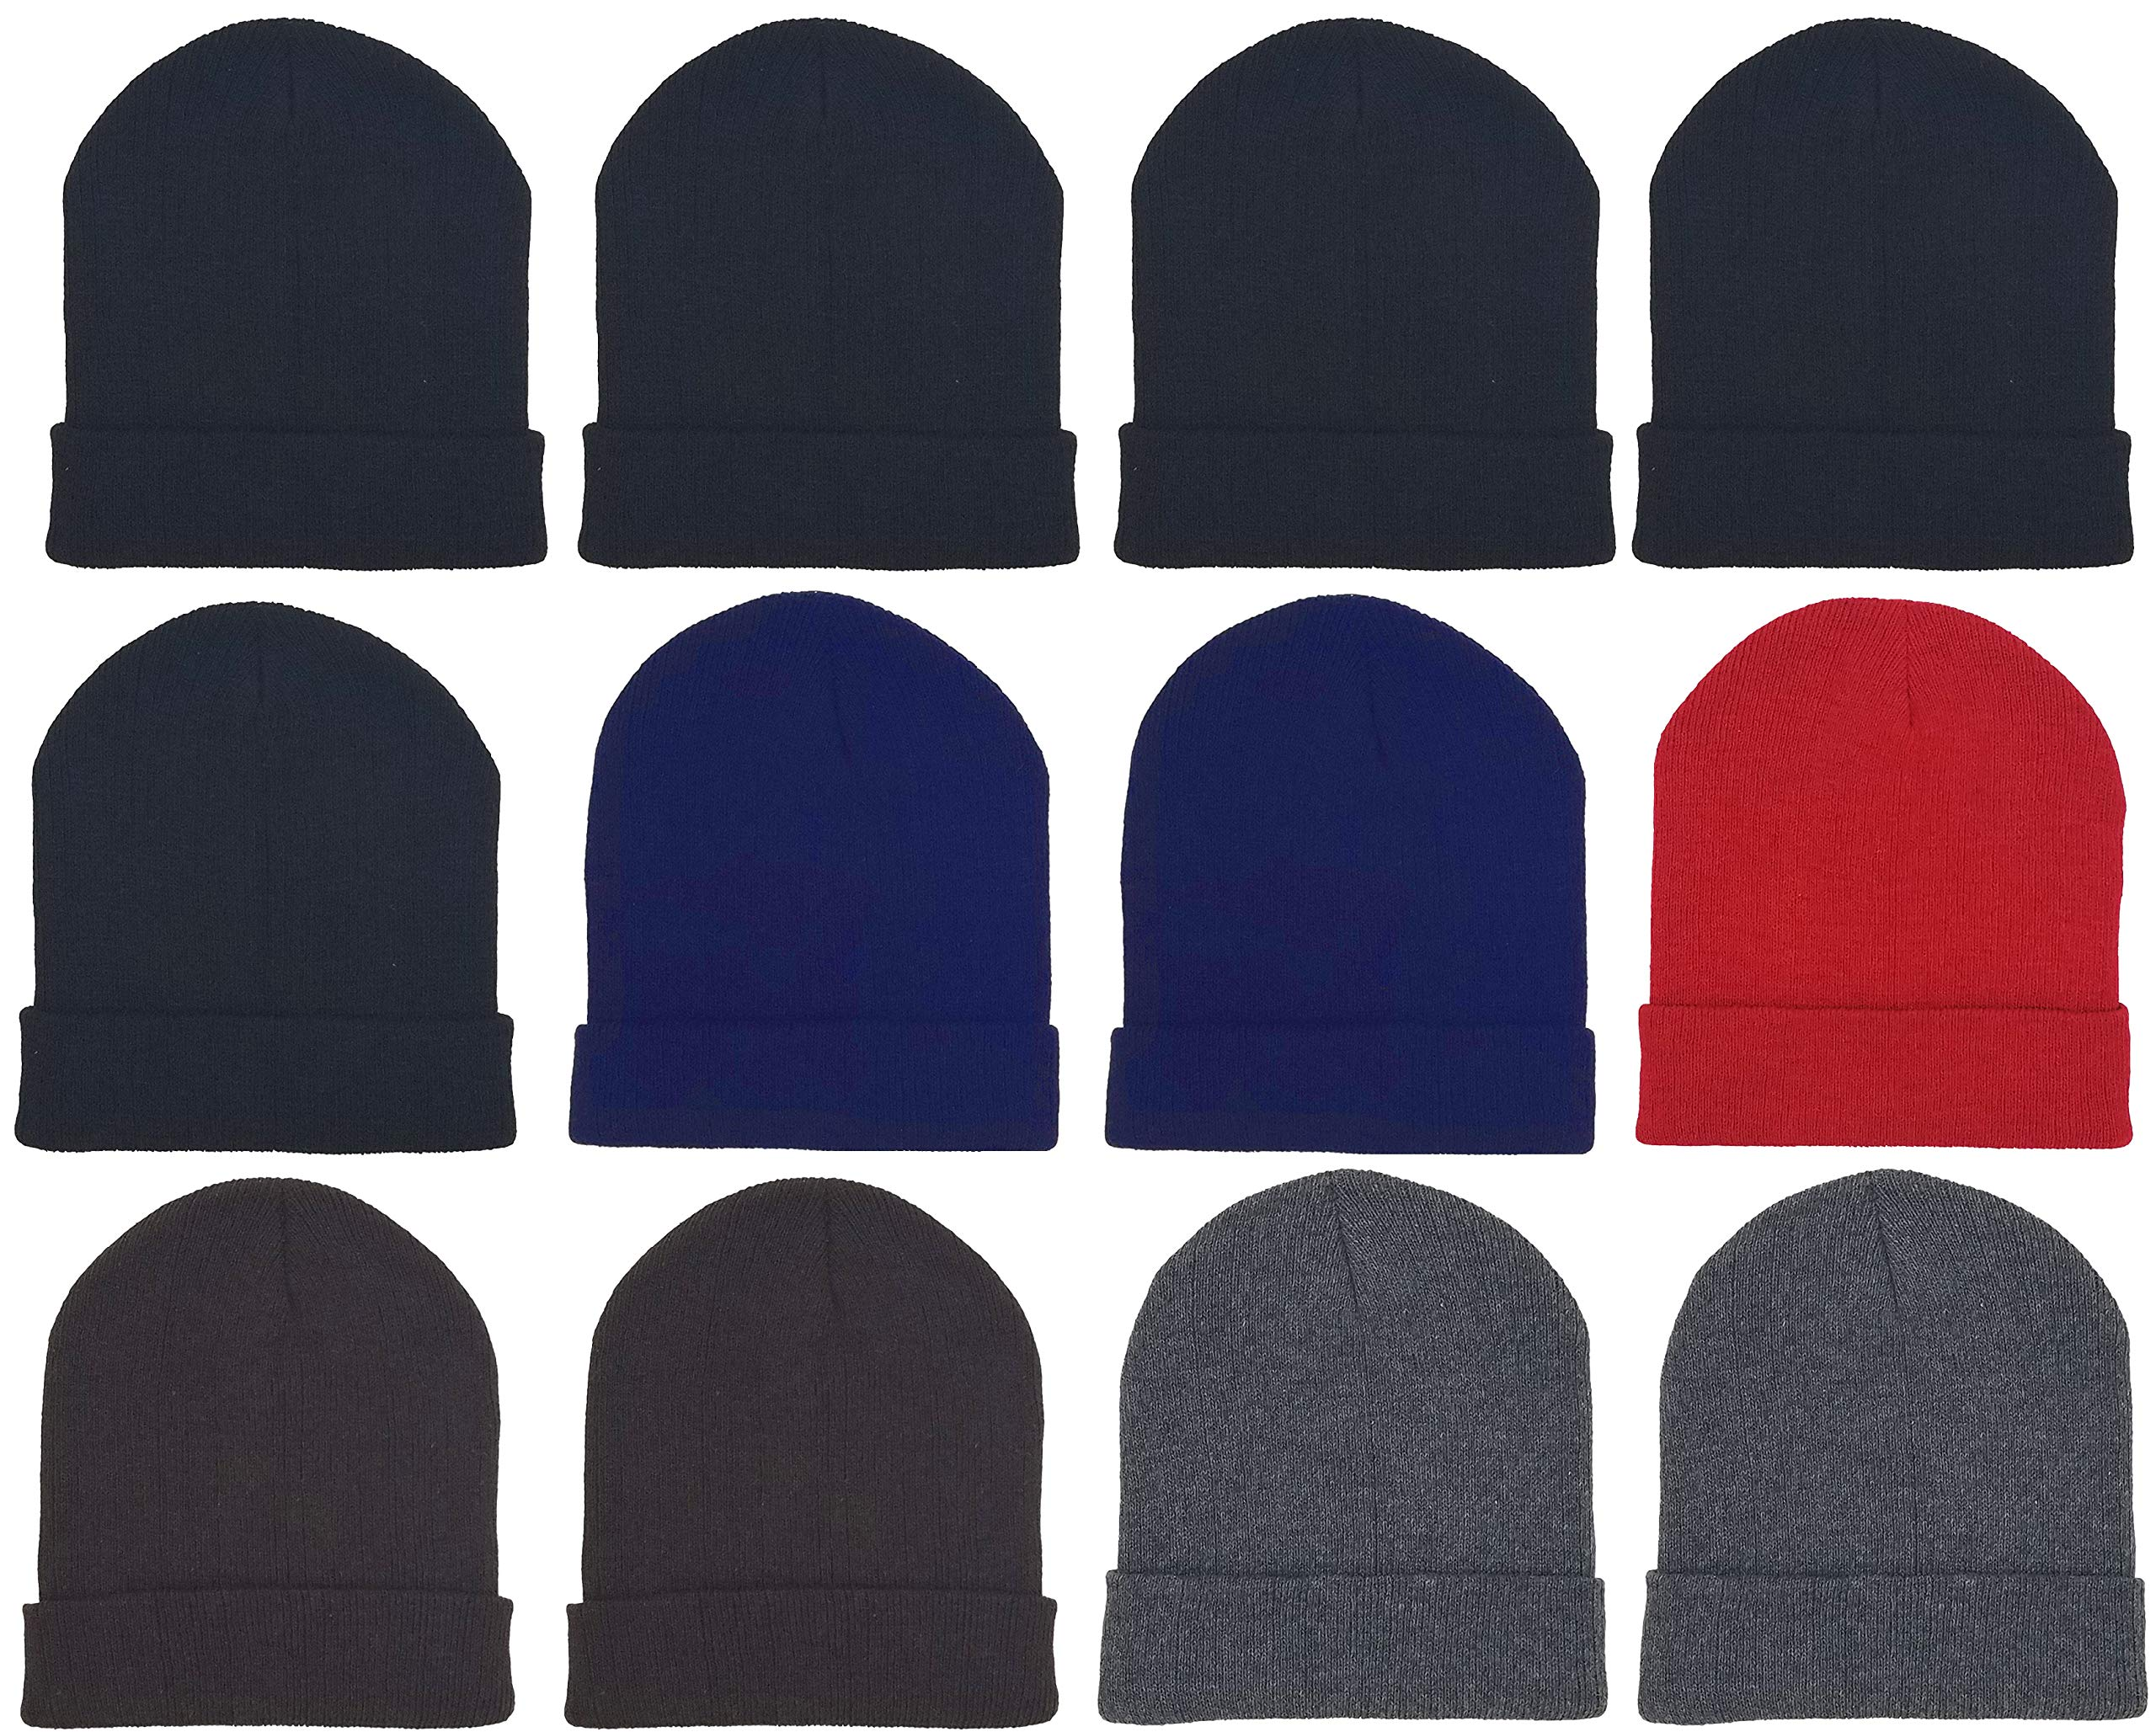 12 Pack Winter Beanies, Unisex, Warm Cold Weather Hats Foldover Cuffed Skull Cap Men and Women (12 Pack Assorted Solids)